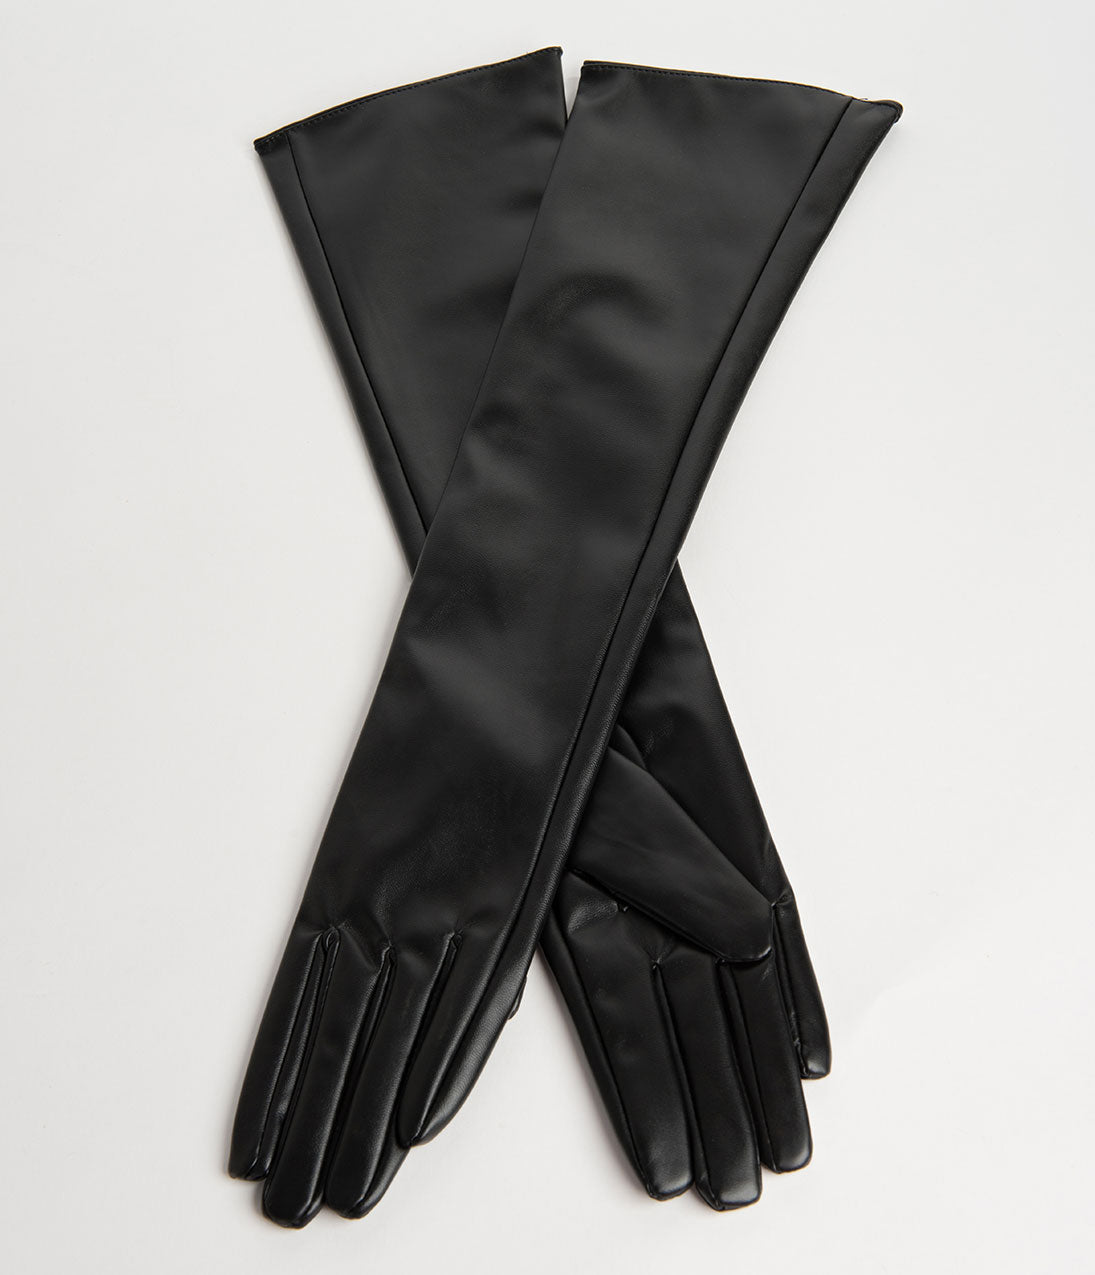 Victorian Gloves | Victorian Accessories Vintage Style Black Leatherette Opera Gloves $18.00 AT vintagedancer.com